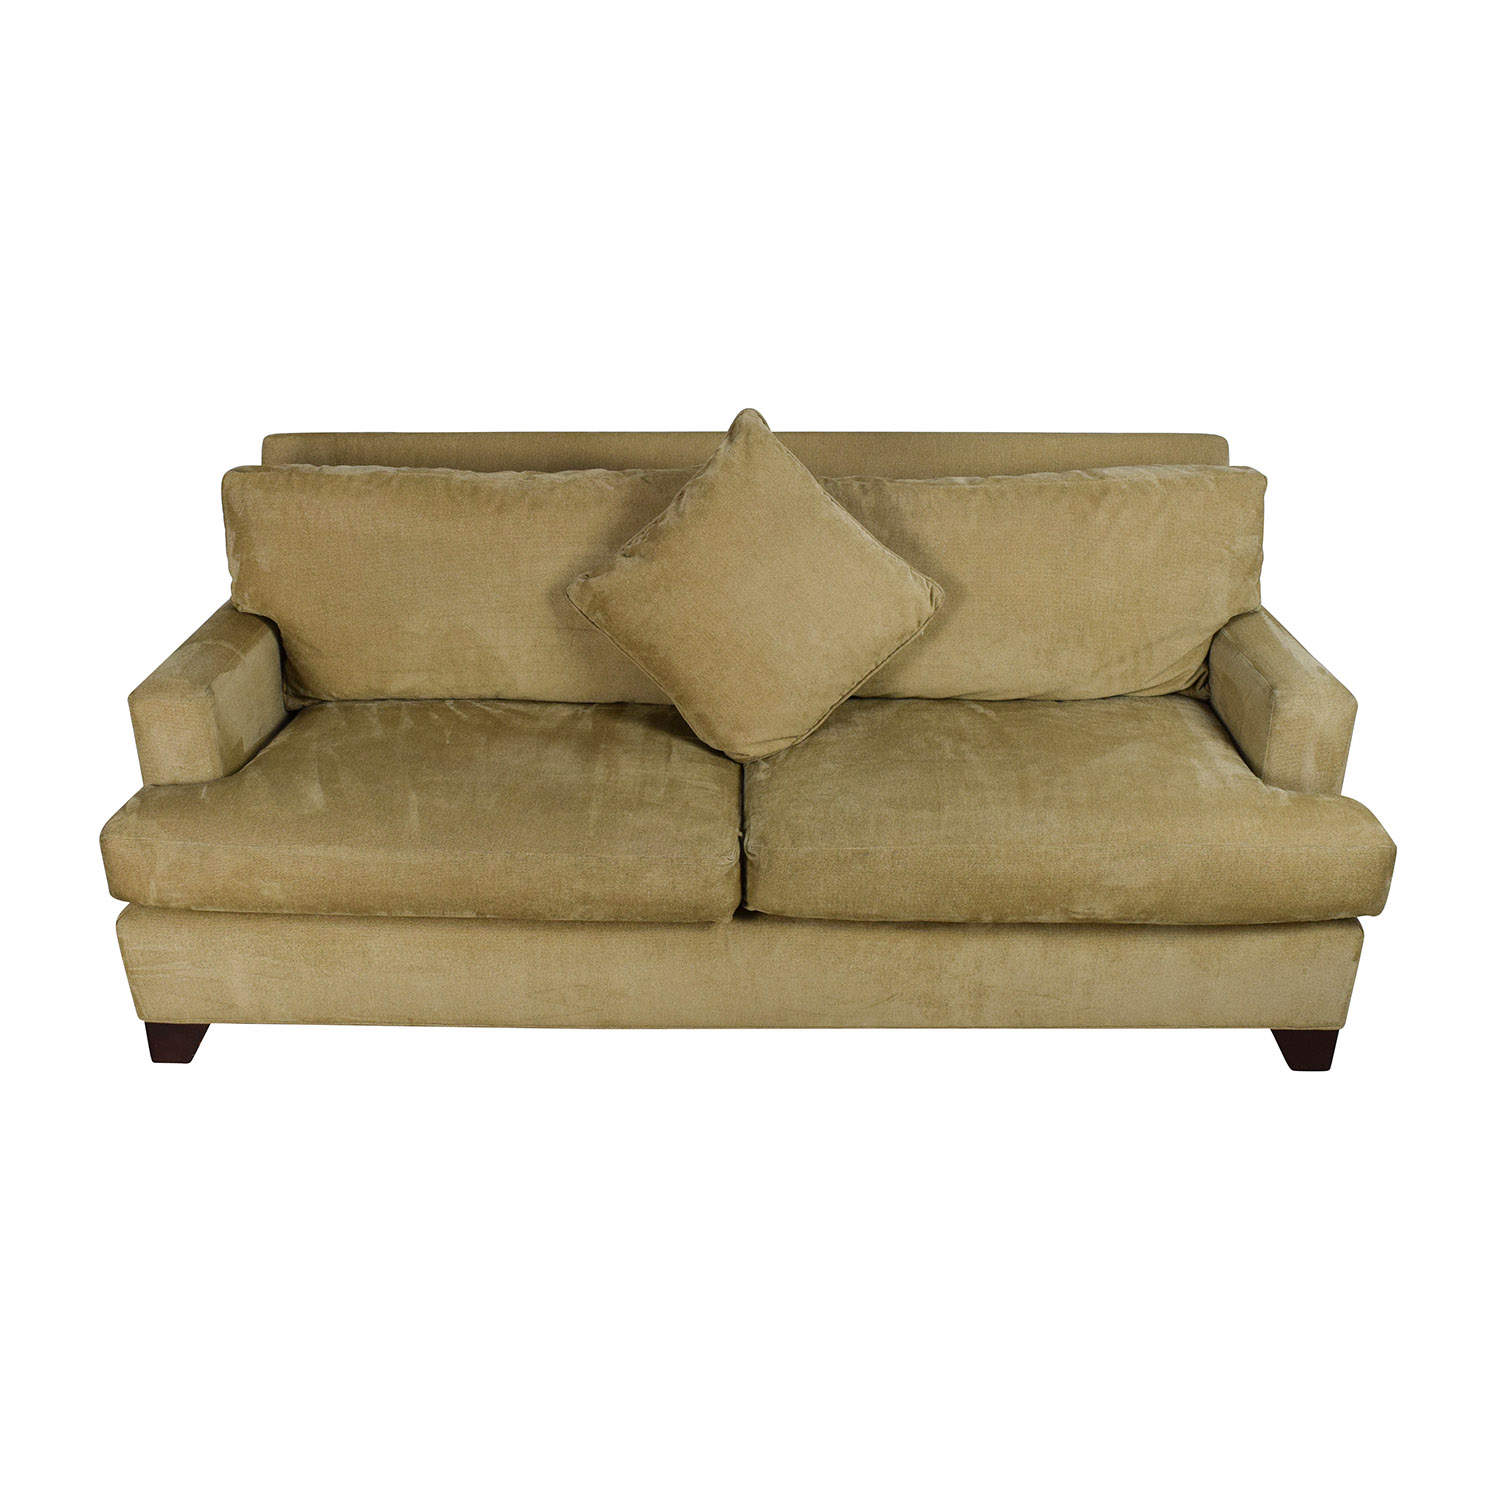 baker sofa price modern living room furniture accessories